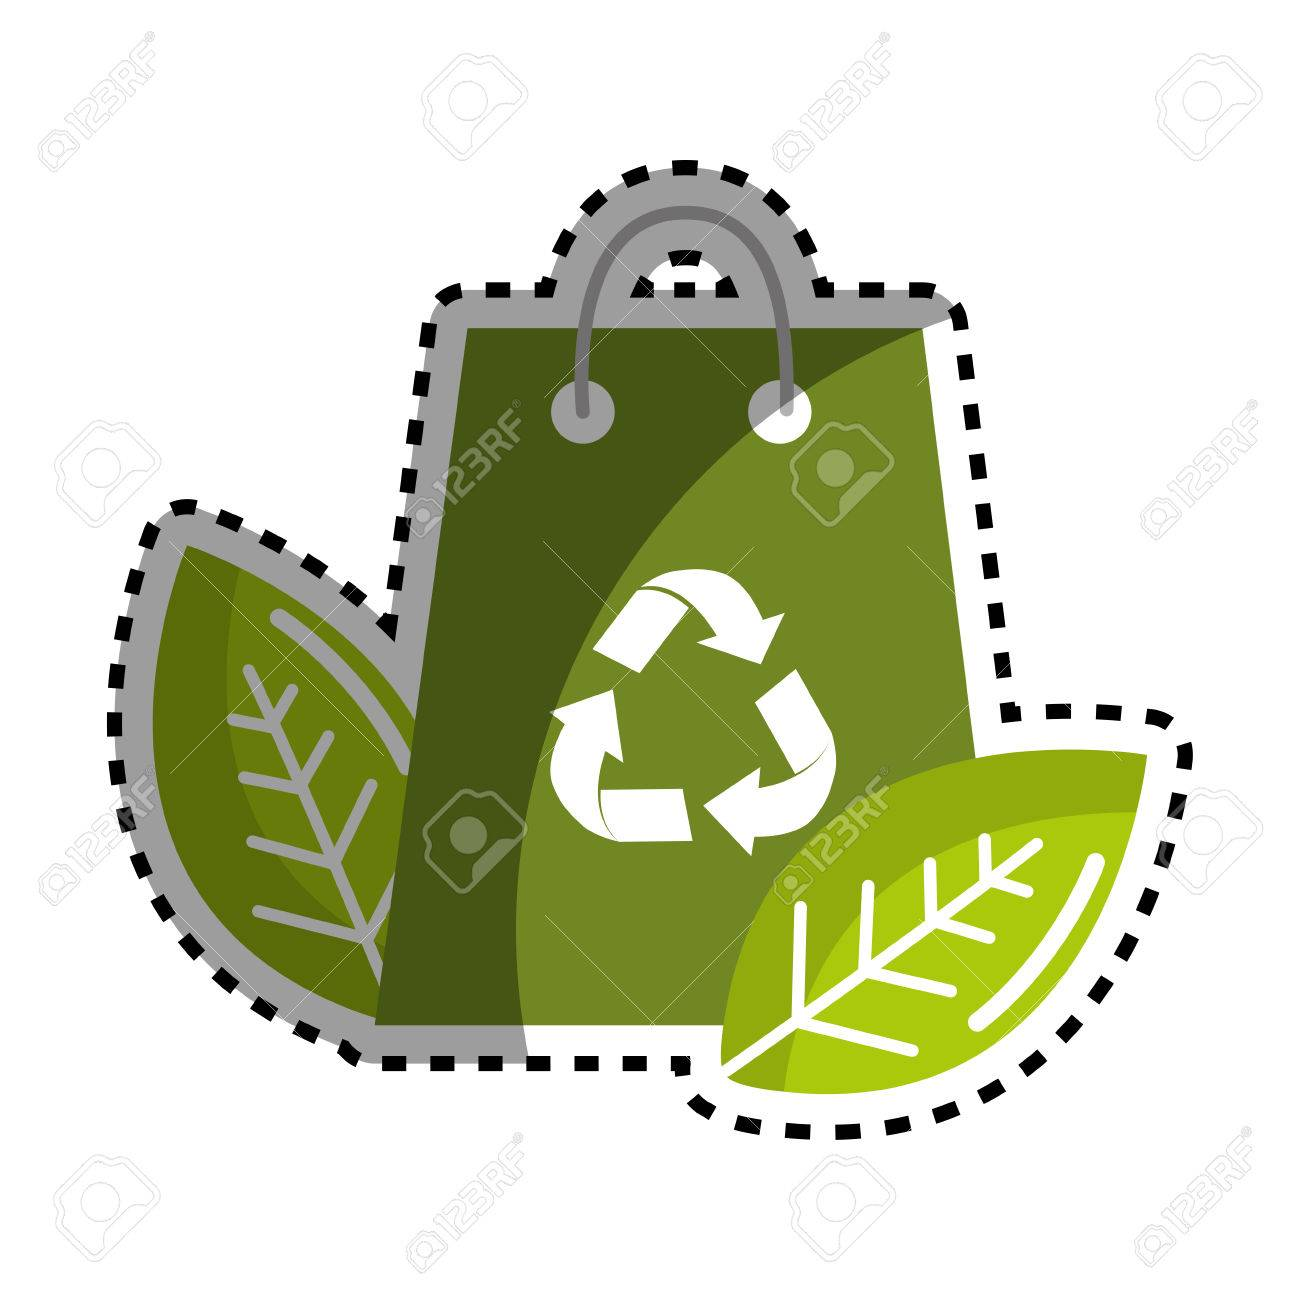 Sticker Green Bag With Recycling Symbol And Leaves Royalty Free